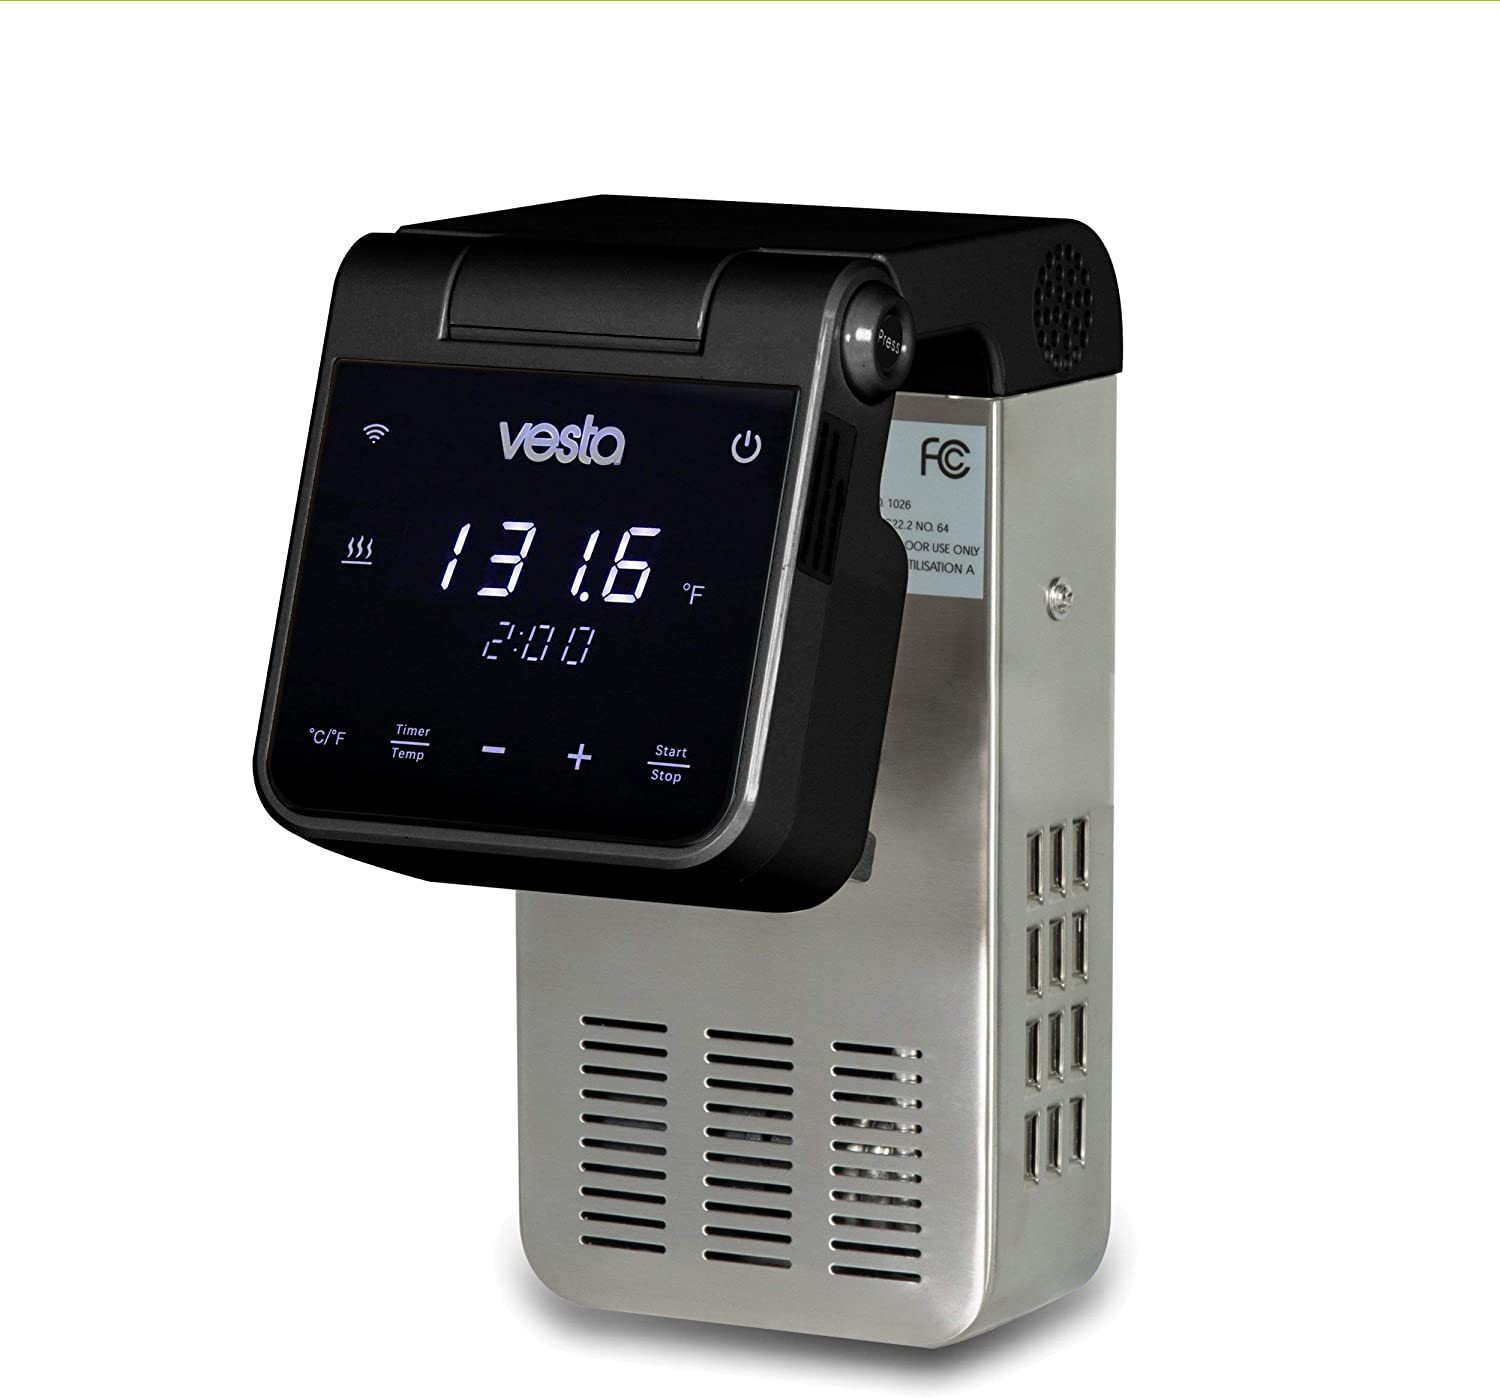 Imersa Elite Sous Vide Cooker with Unique Folding Design   Powerful Pump Immersion Circulator   App Enabled with Big Display   by Vesta Precision